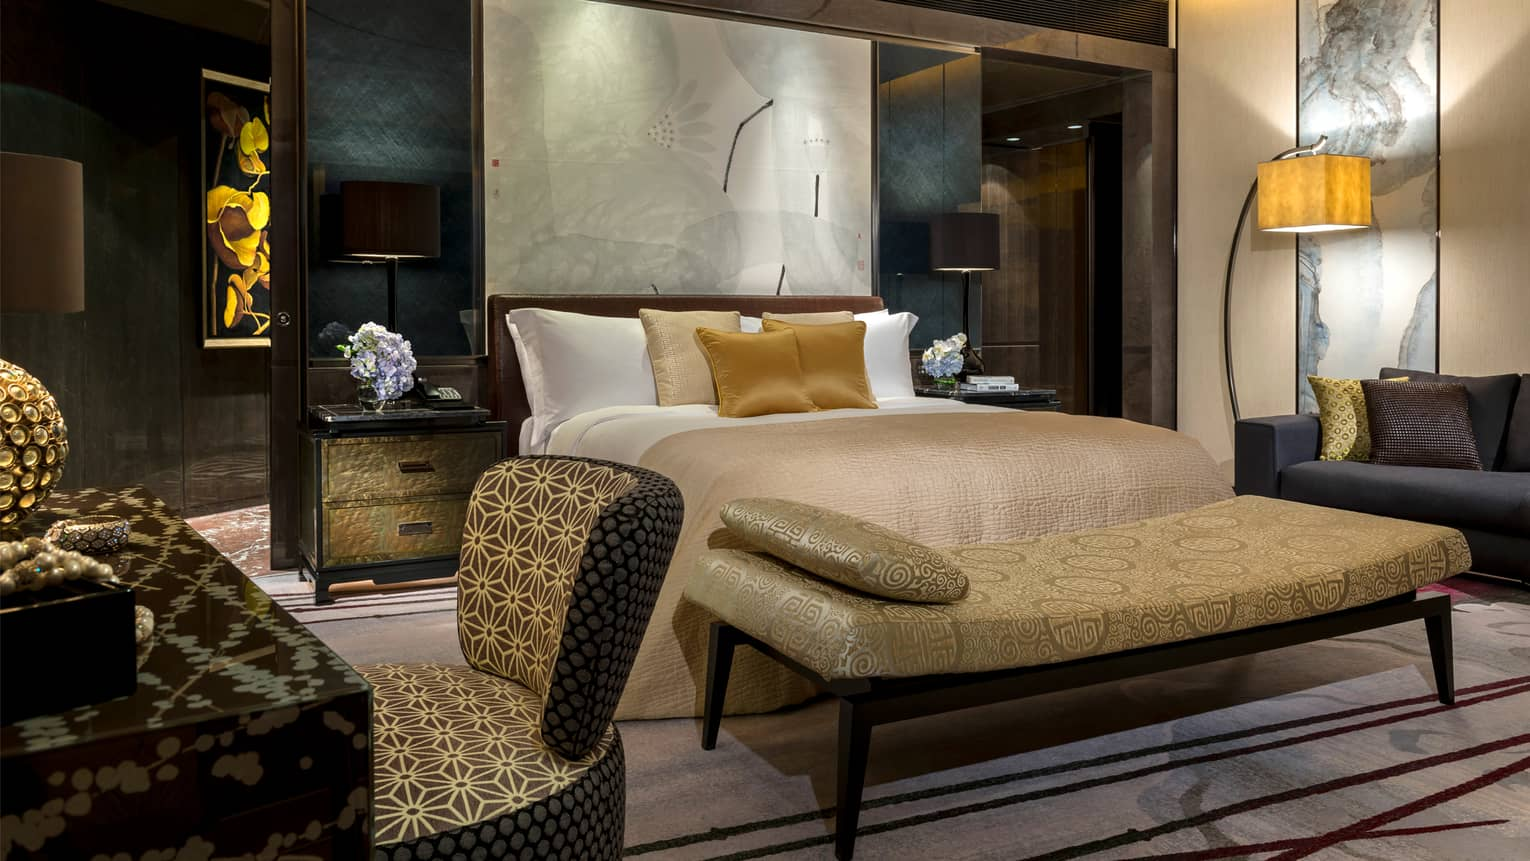 Hotel room at night with dark brown and cream decor, gold accent pillows and bench, modern art